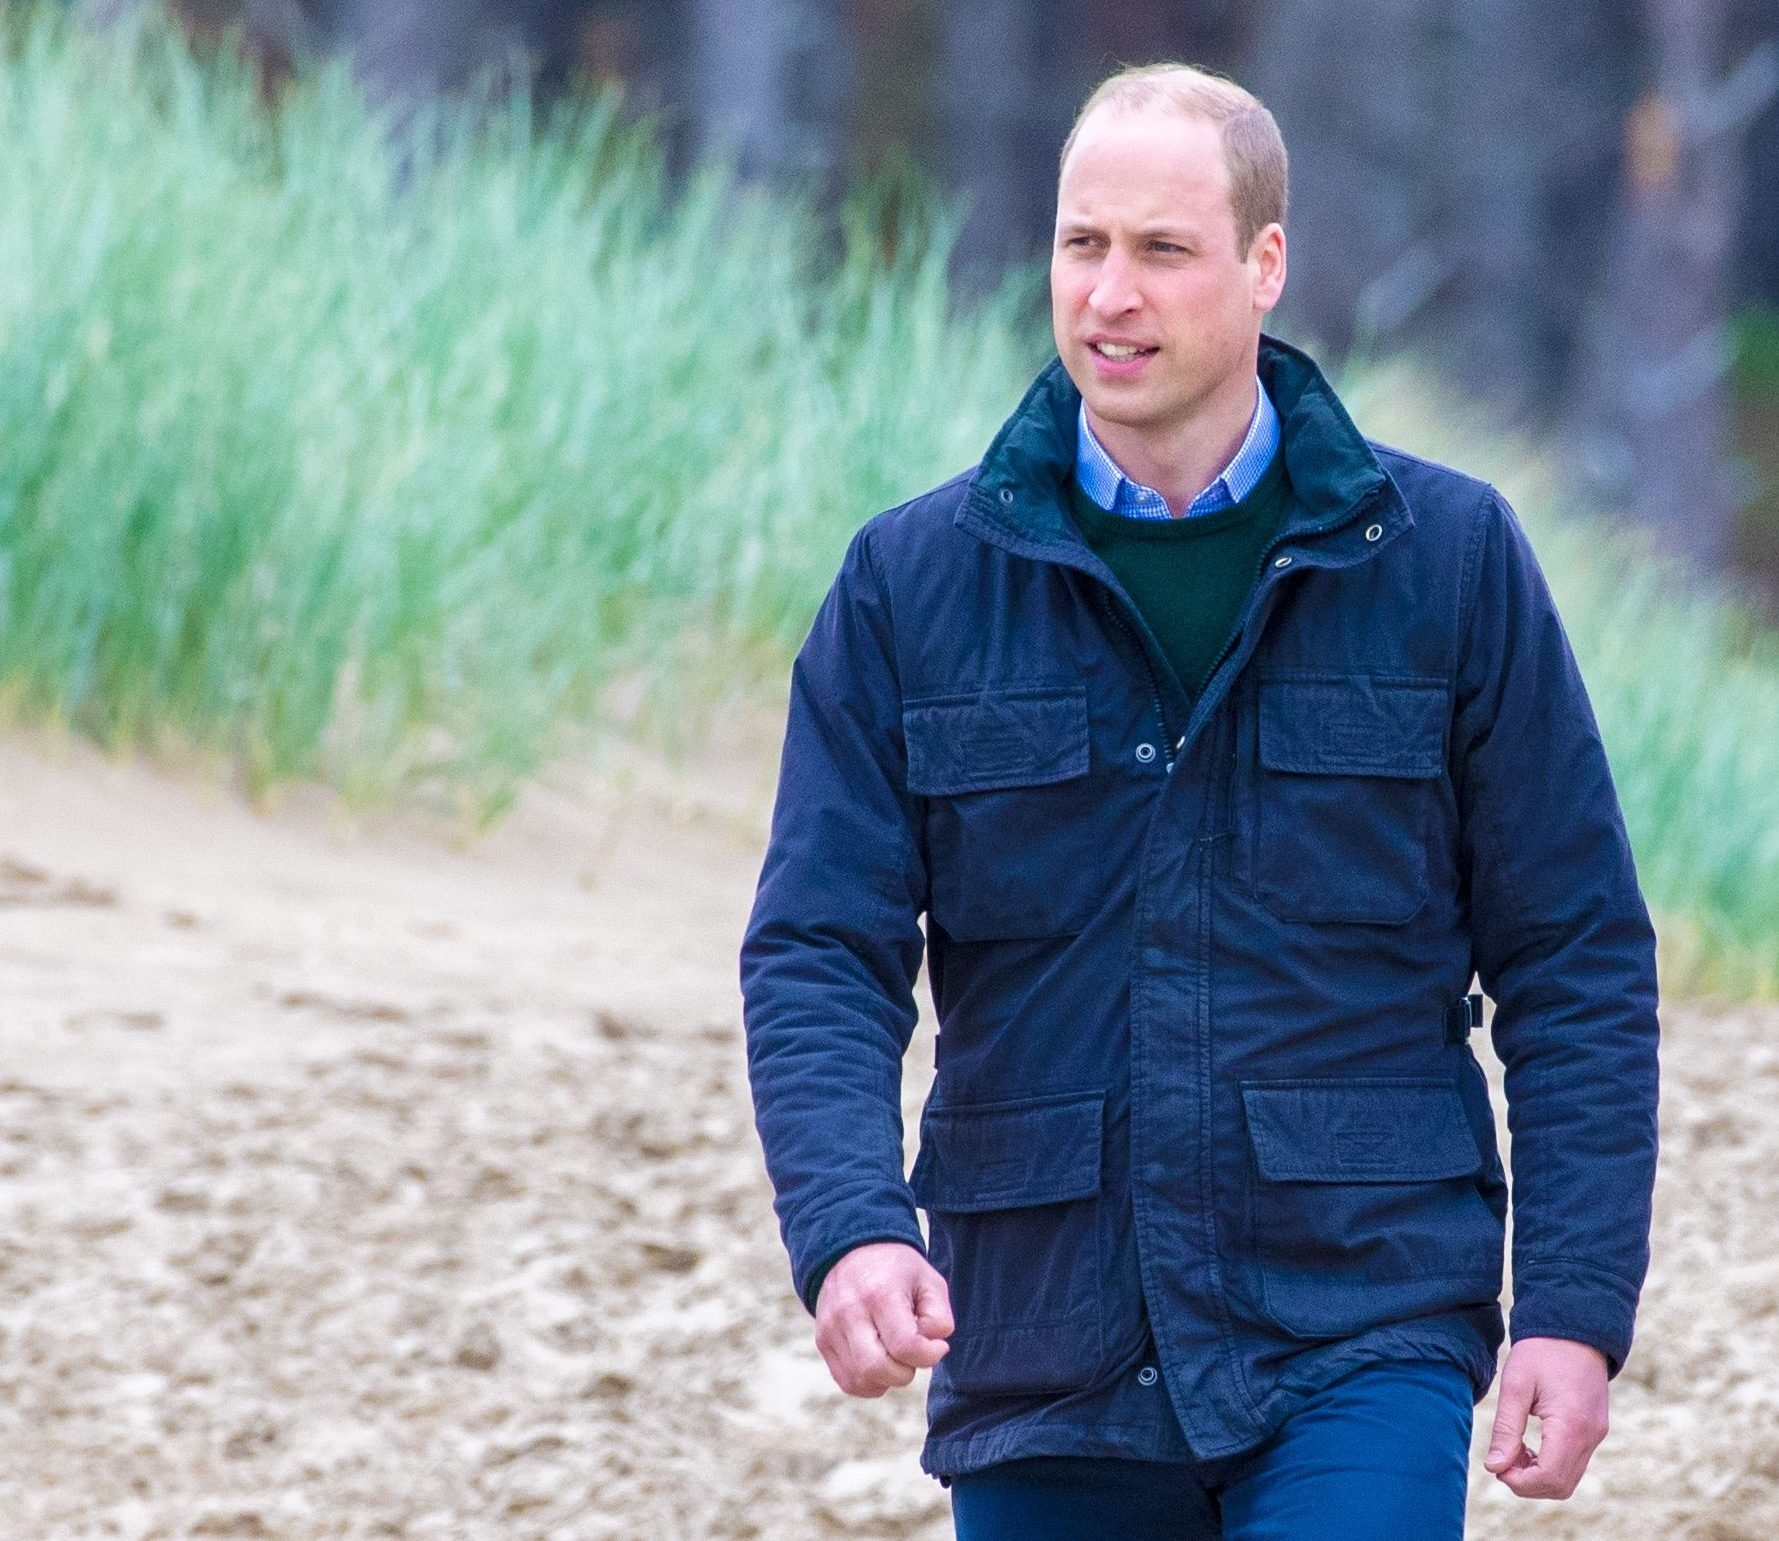 Mandatory Credit: Photo by Shutterstock (10231845p) Prince William at Newborough Beach Prince William and Catherine Duchess of Cambridge visit to Wales, UK - 08 May 2019